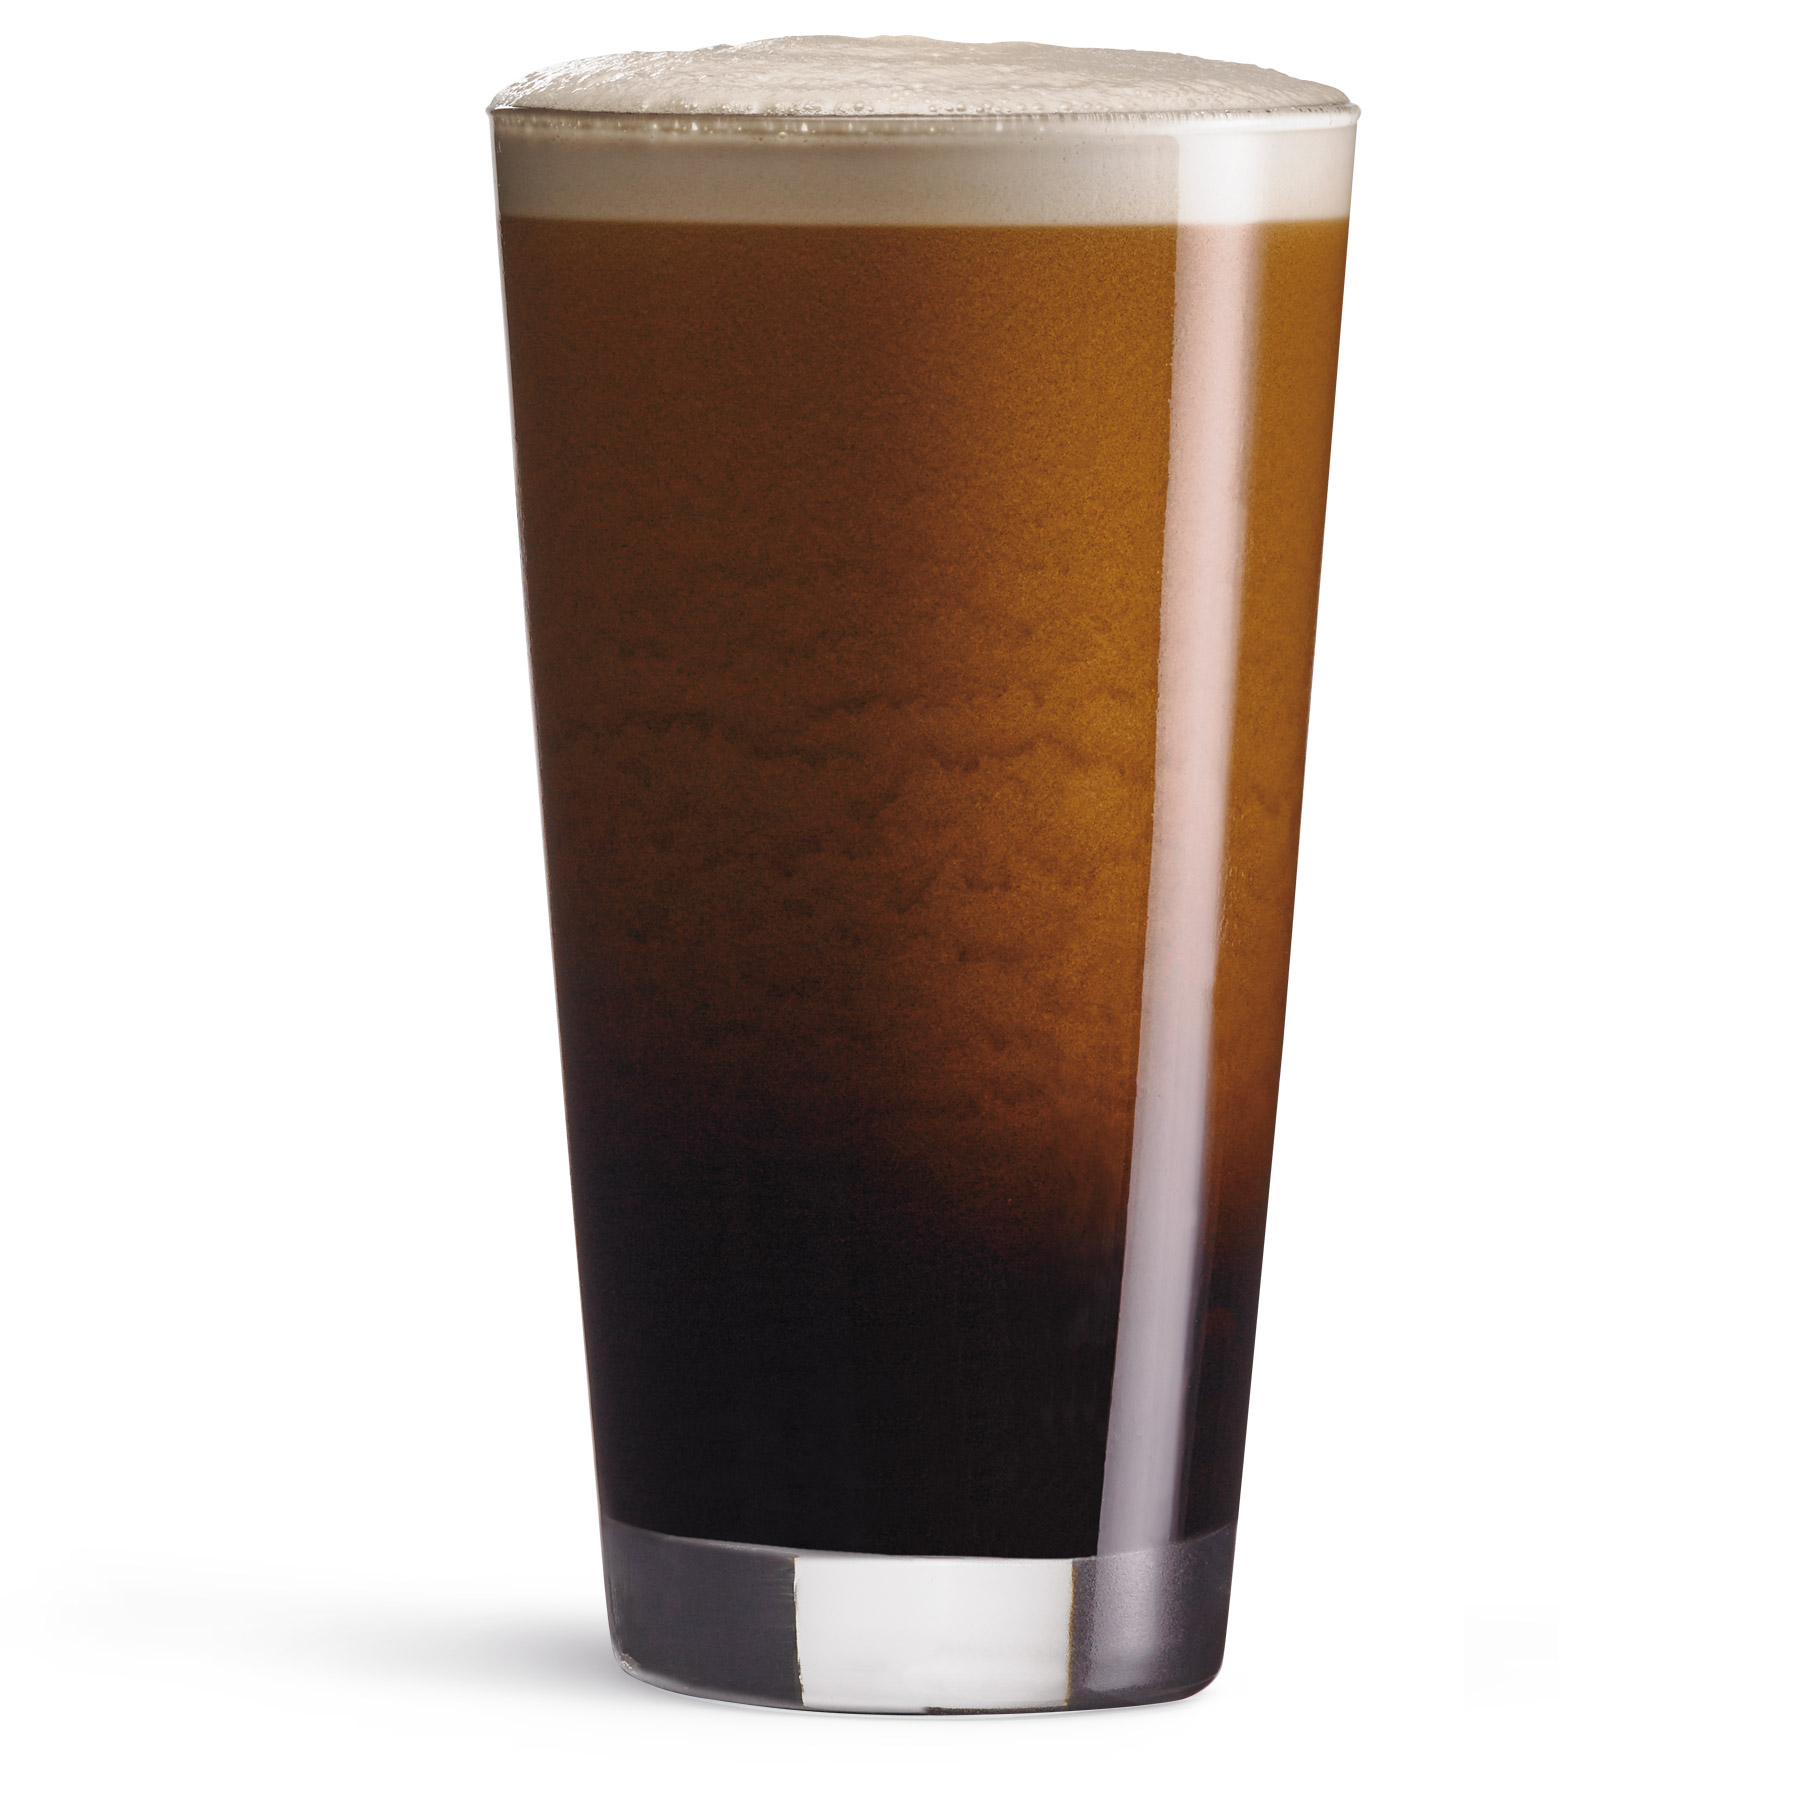 7-Eleven Nitro Cold Brew Coffee is infused with nitrogen gas which produces a rich and silky taste with a creamy head.